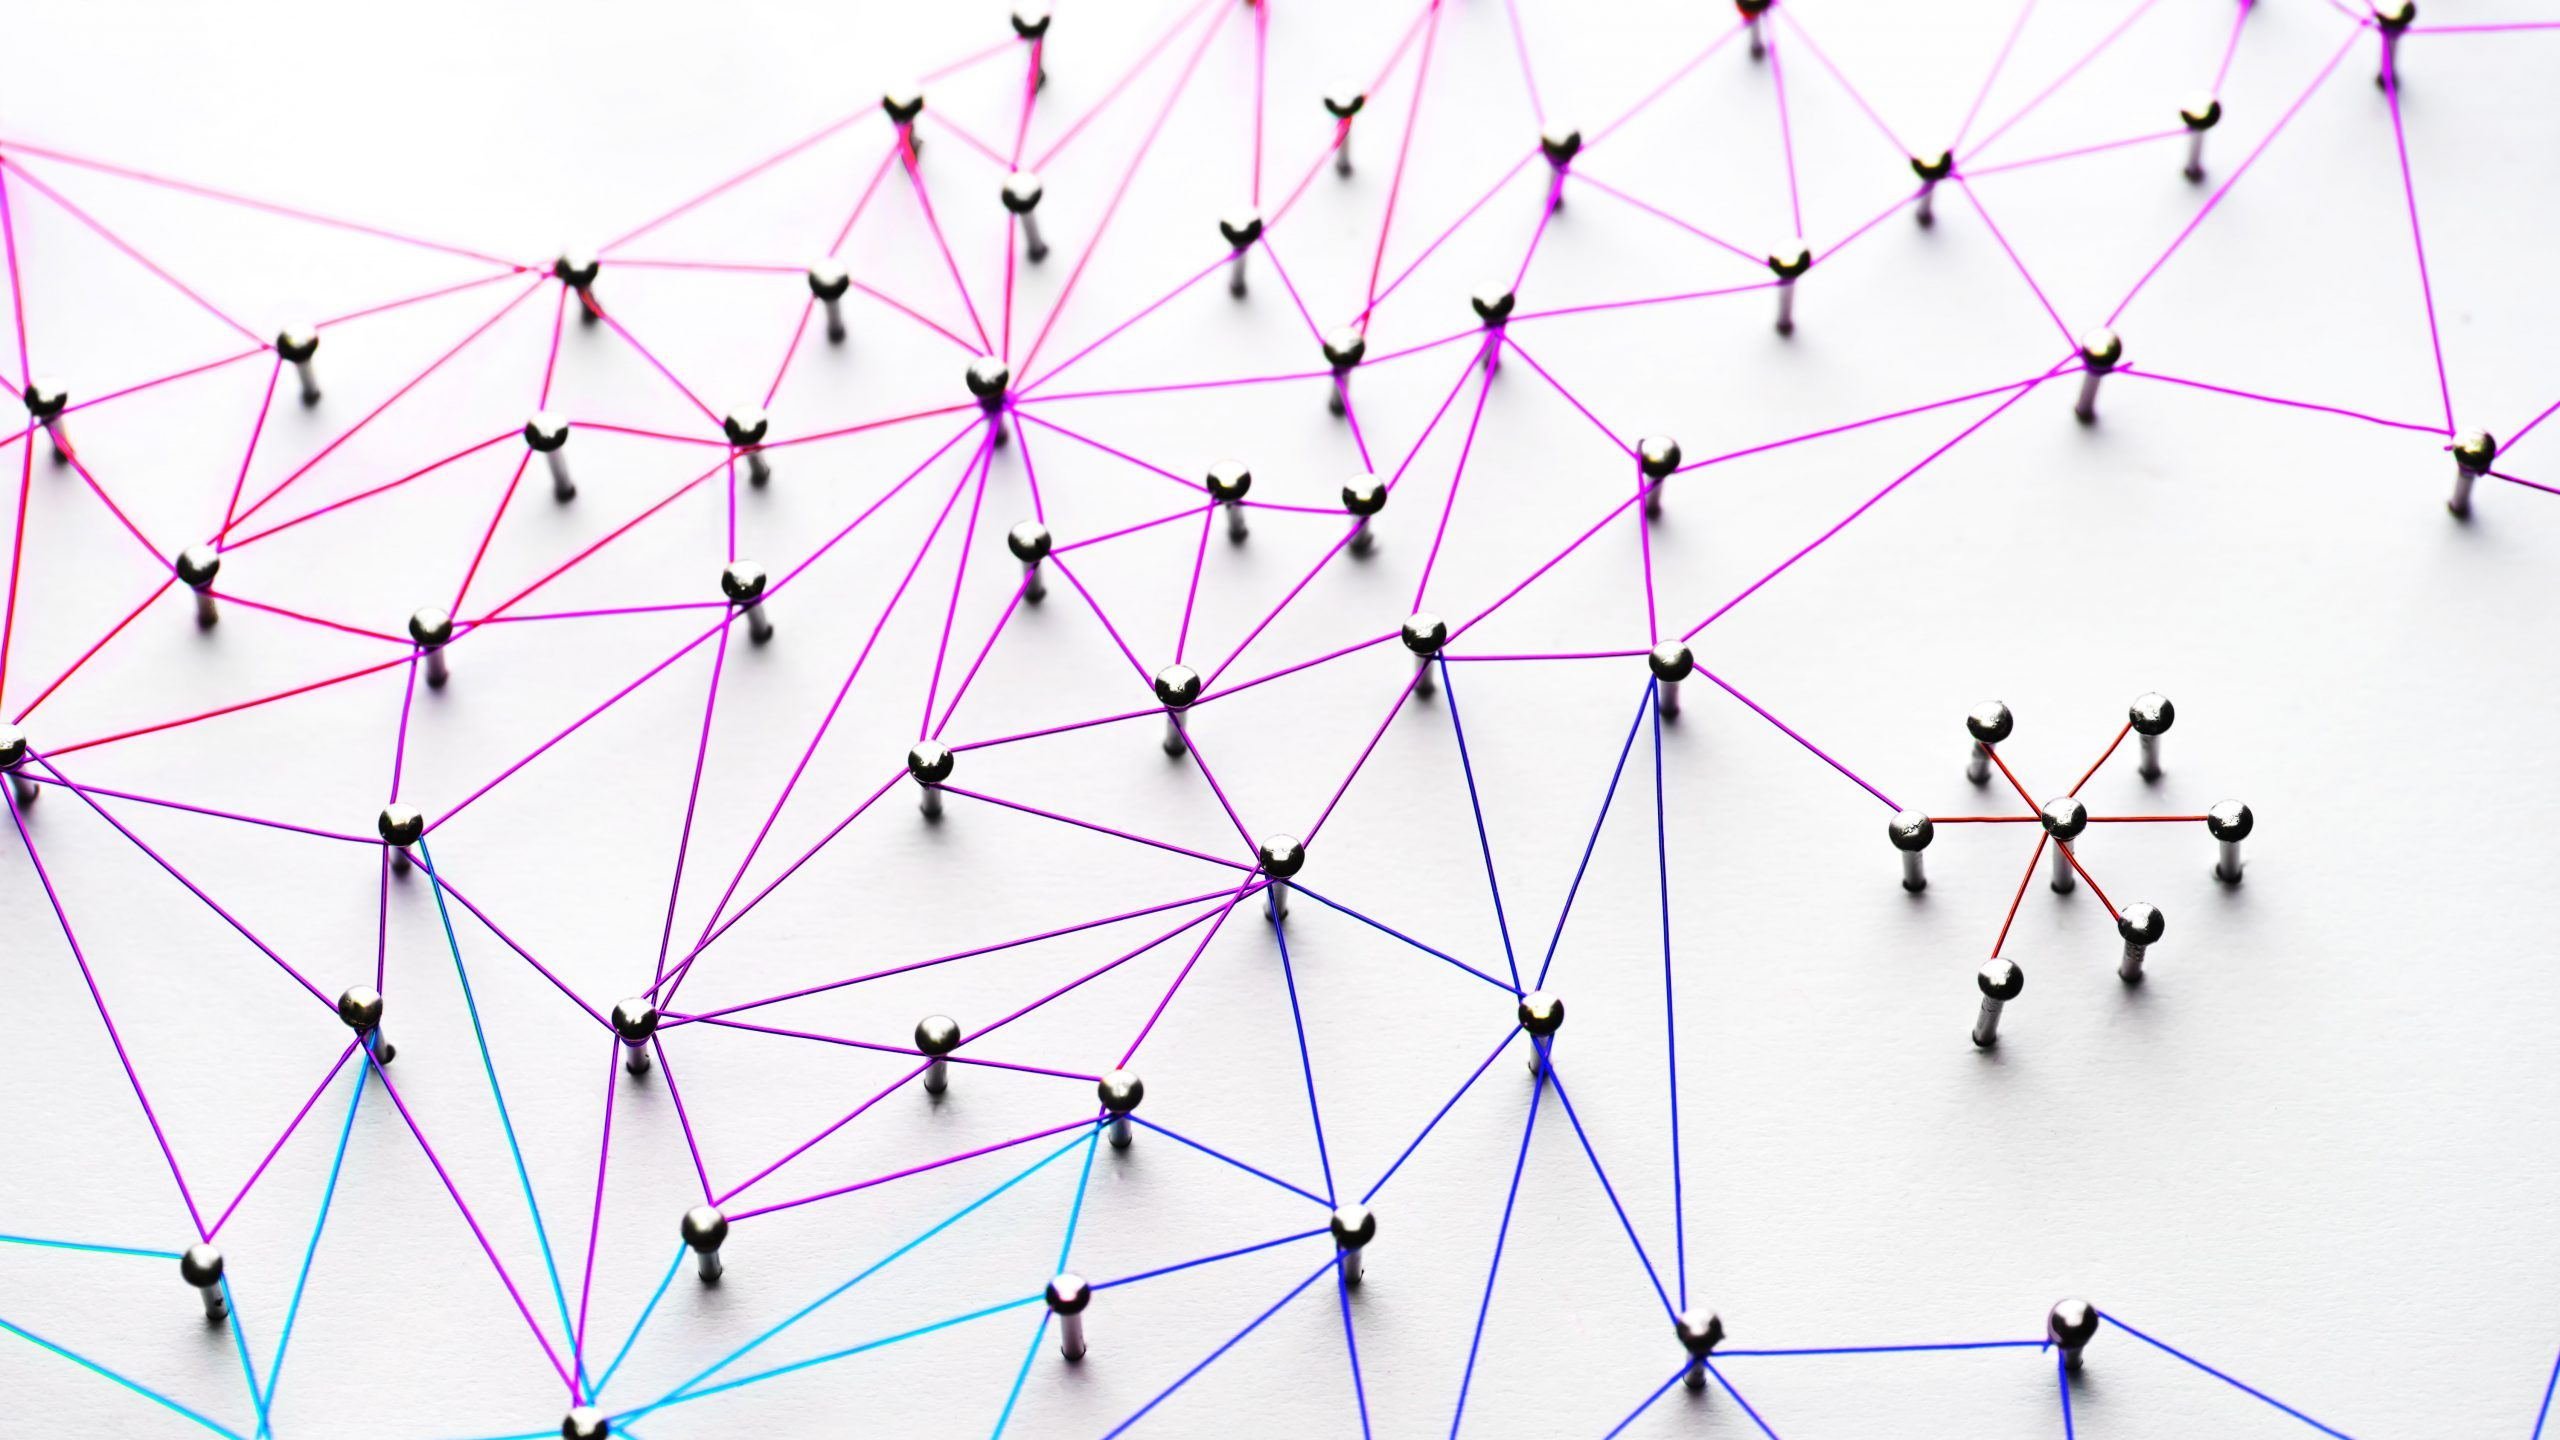 Is Individualized, Account-Based Marketing Here to Stay or Just a Passing Trend?